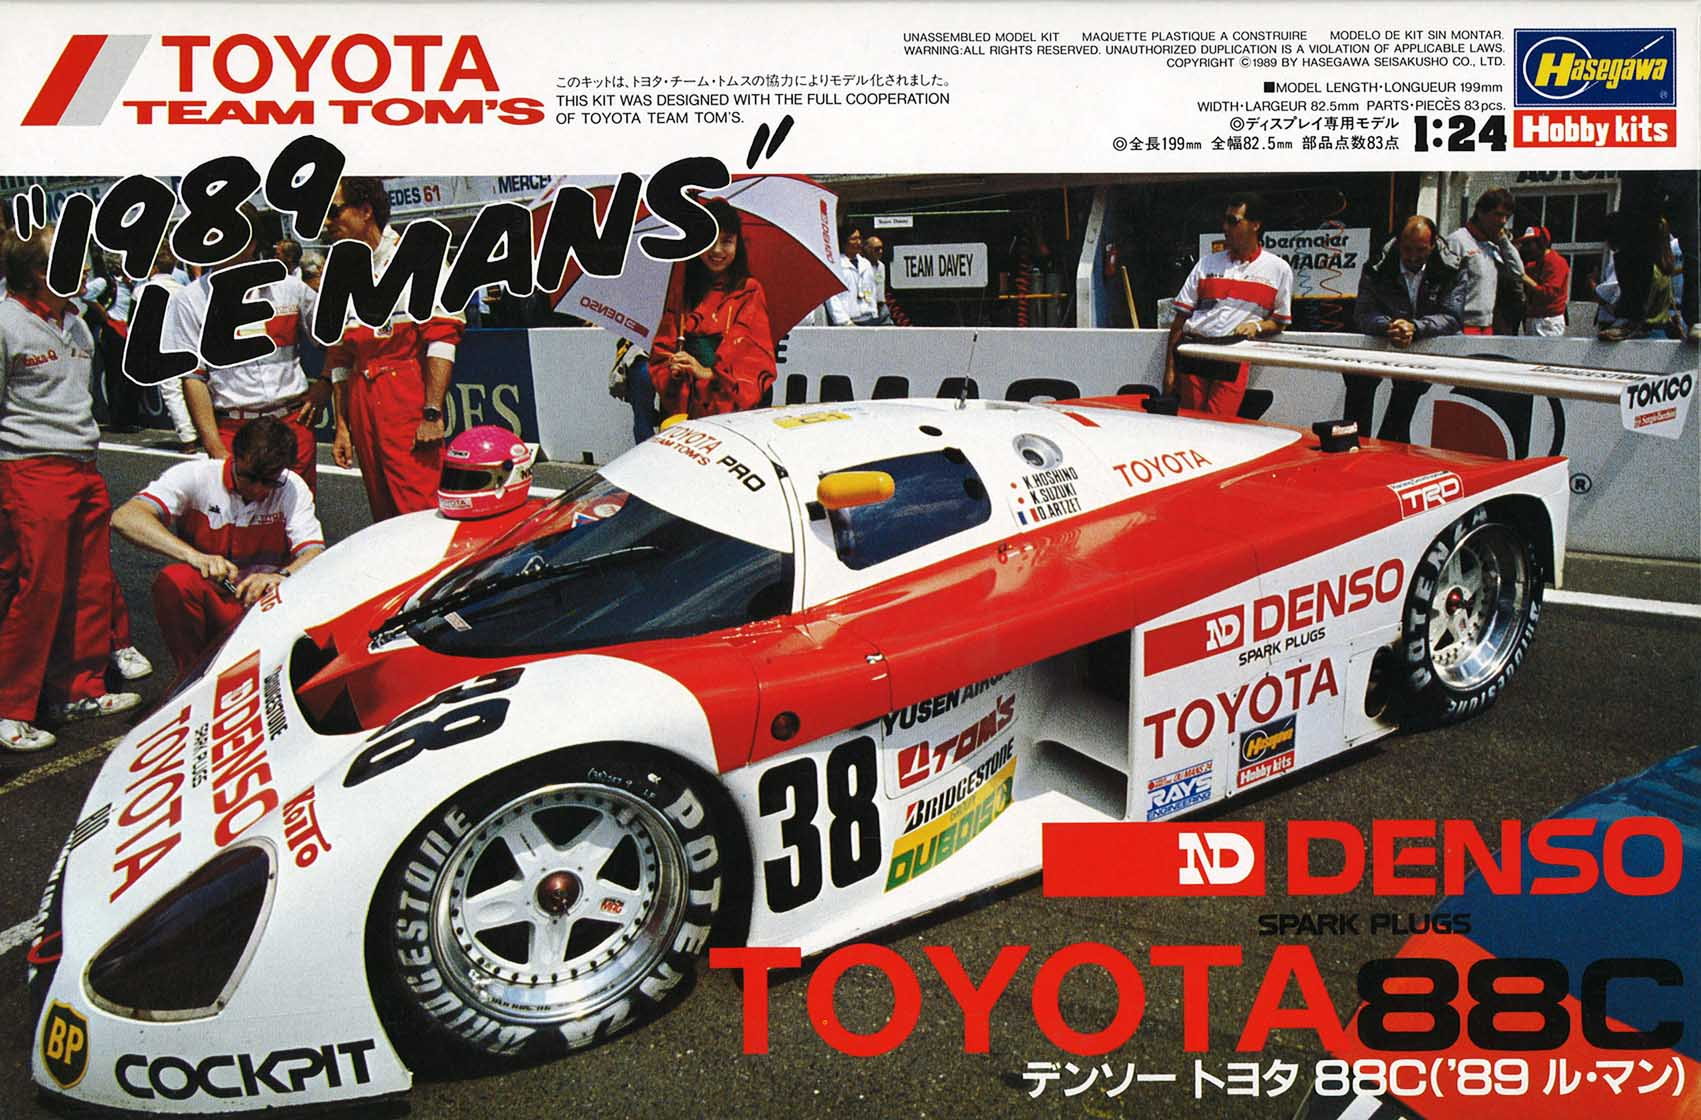 Hasegawa 1/24 Denso Toyota 88C ('89) Le Mans Scale Kit 2019 re-issue